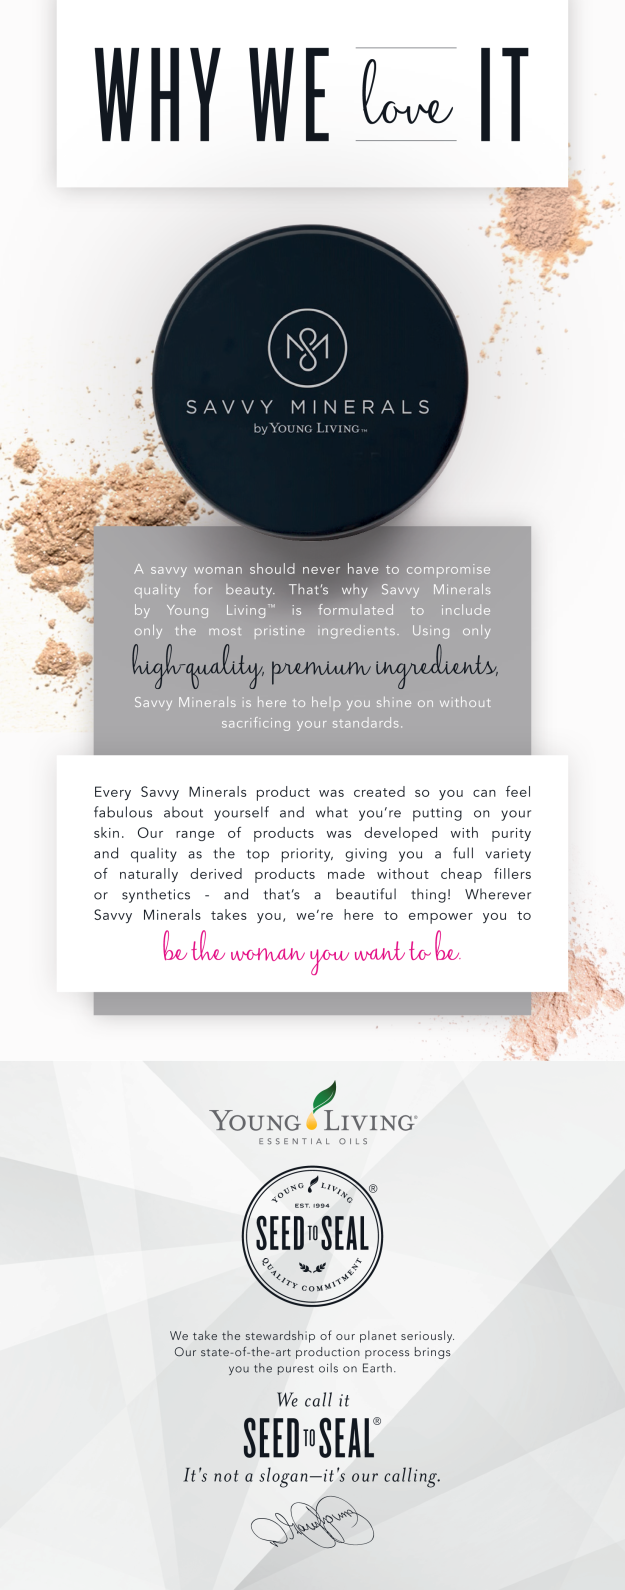 Savvy Minerals Why We Love it